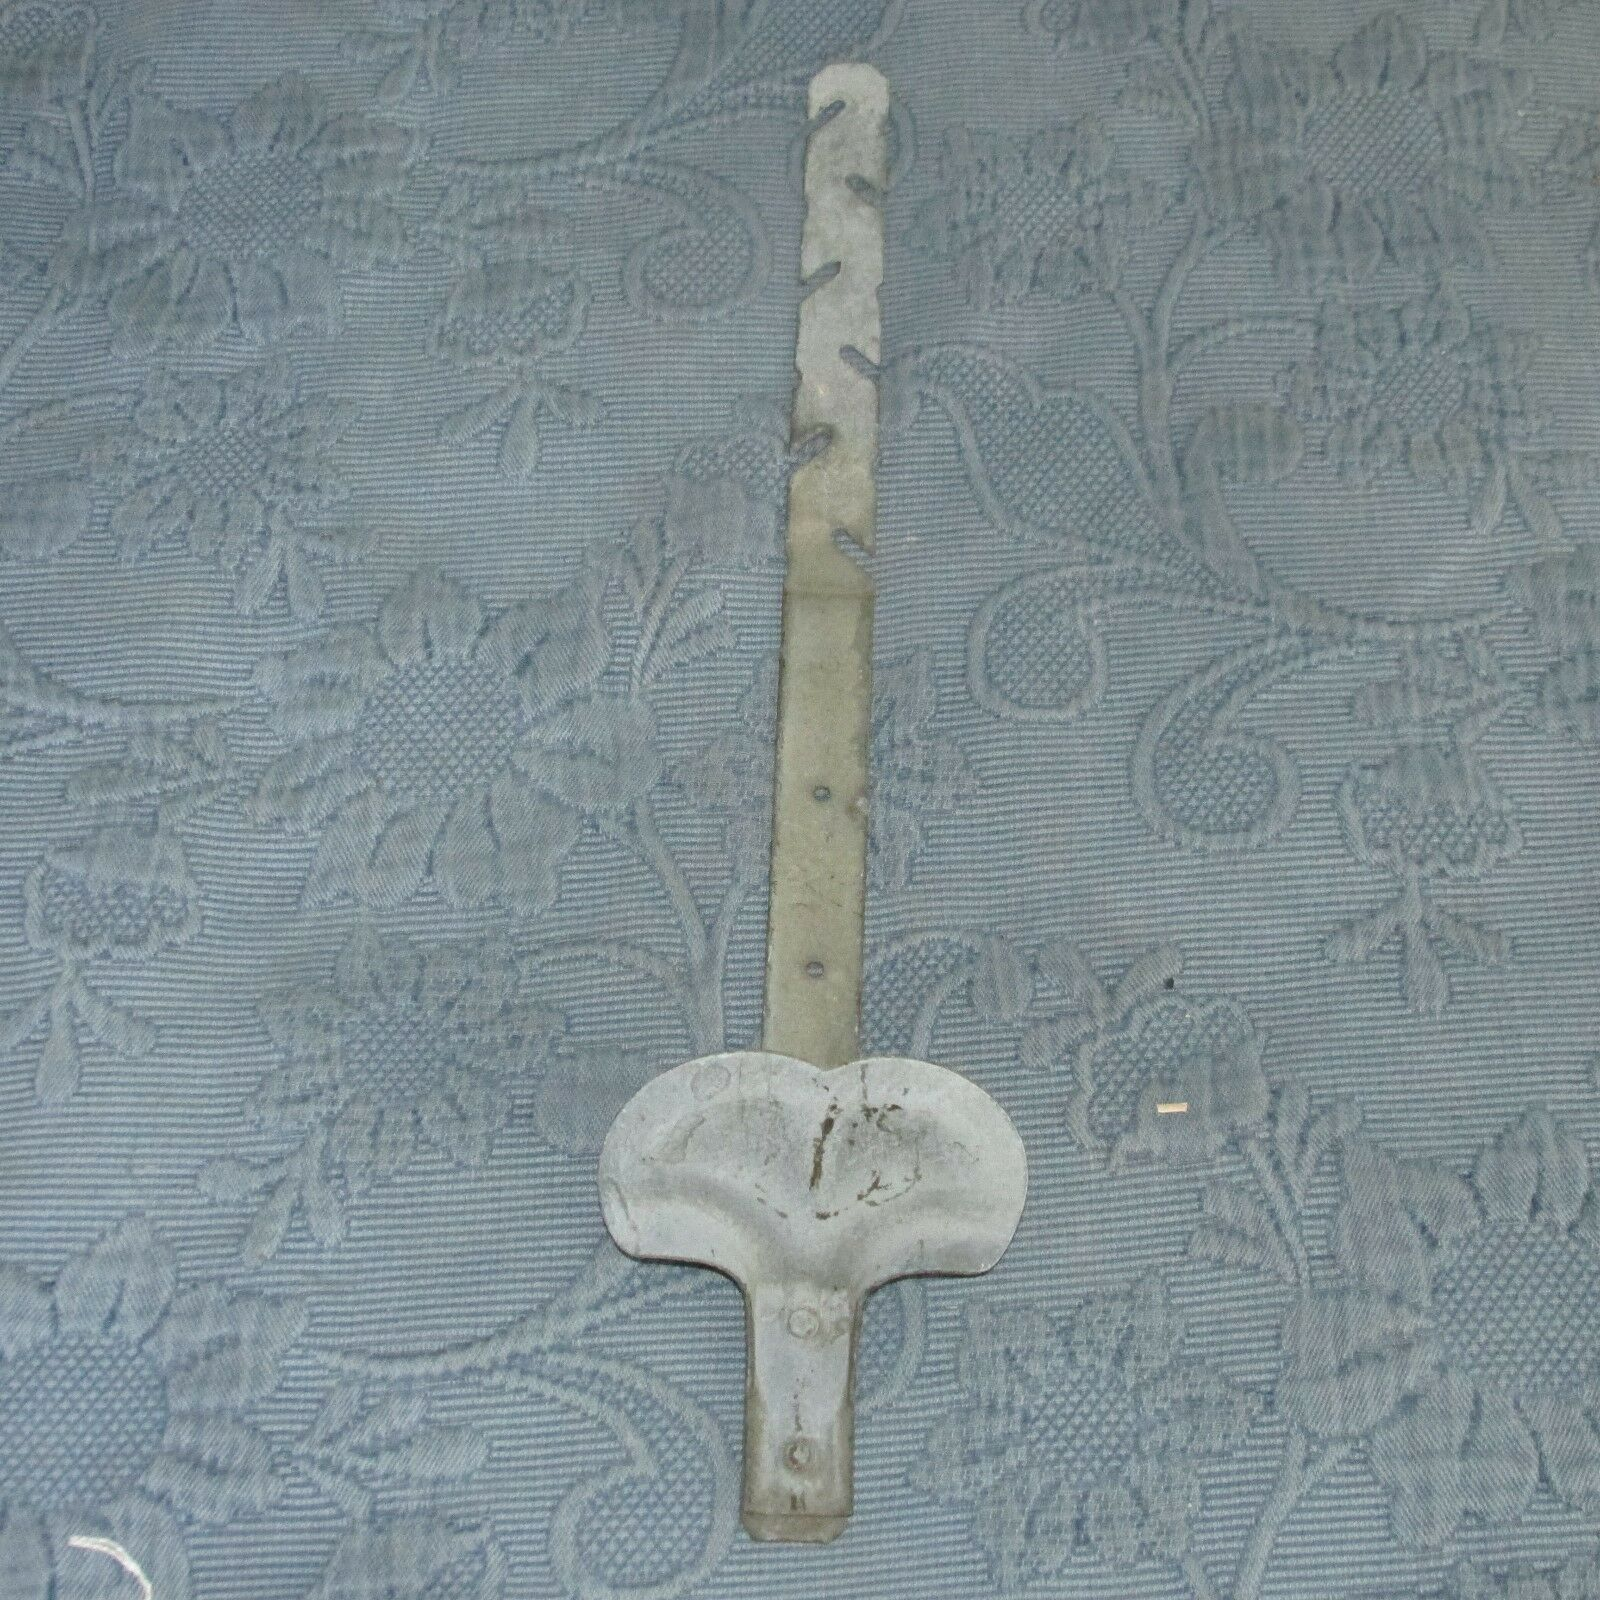 Vintage Zinc or Galvanized Metal Snowbird Roof Hardware